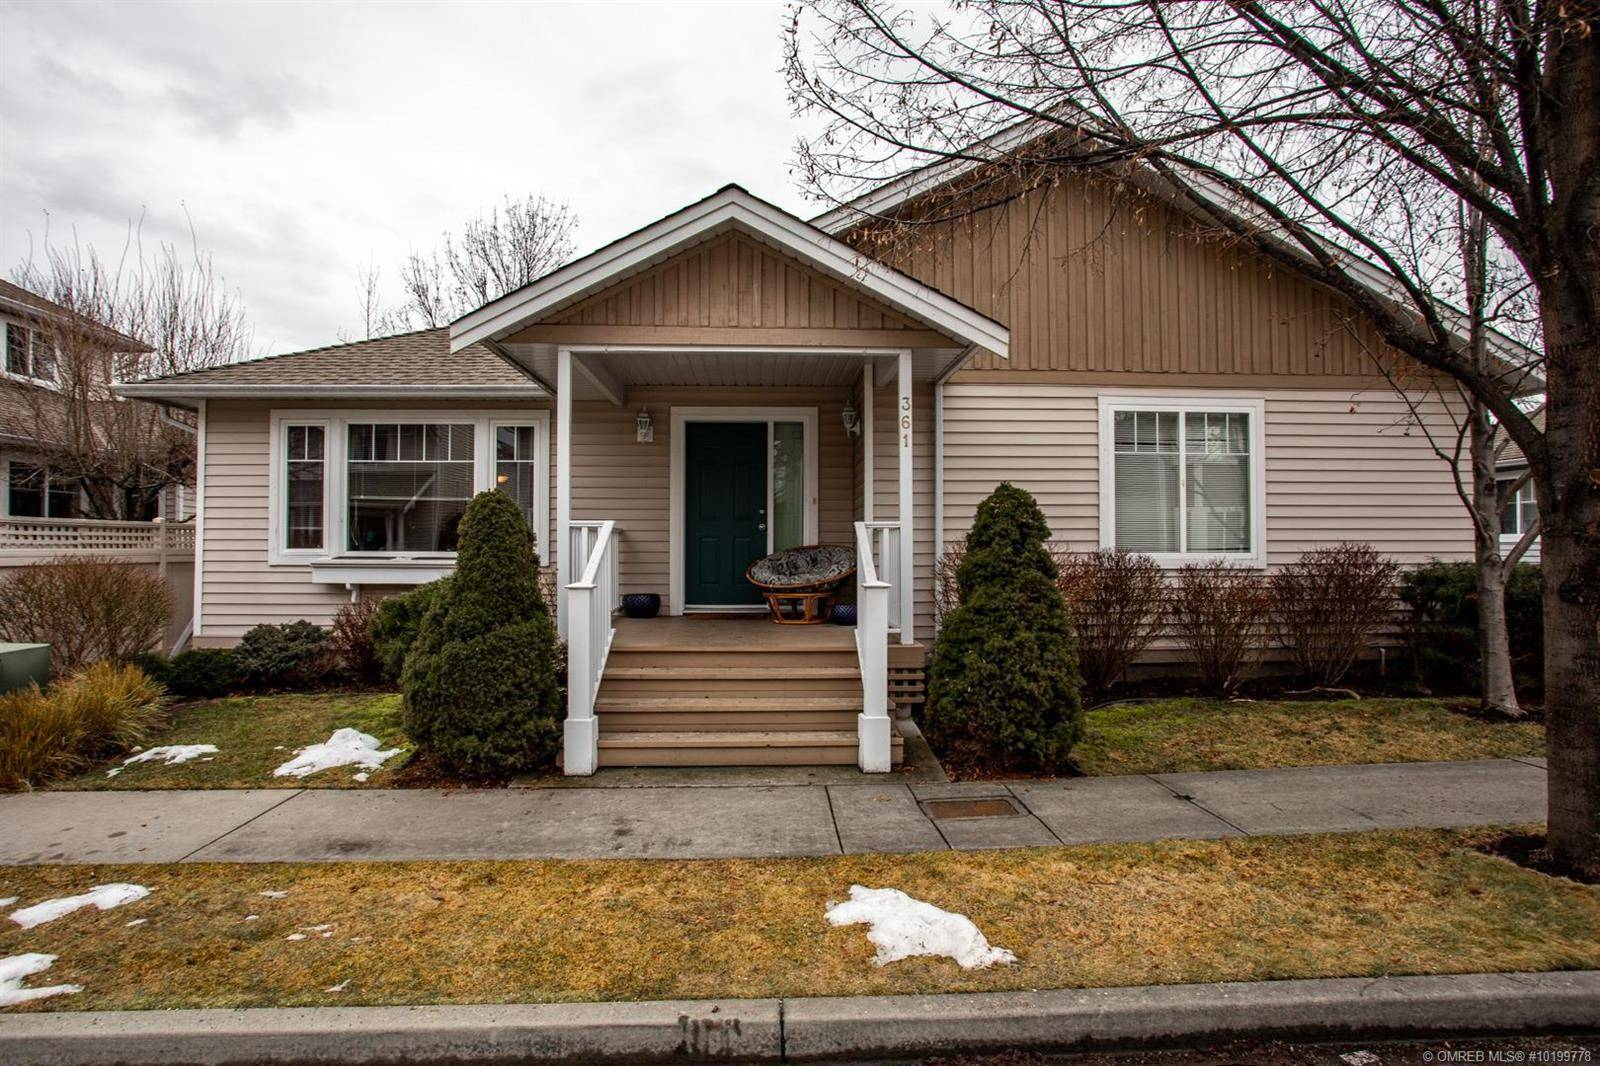 House for sale at 665 Cook Rd Unit 361 Kelowna British Columbia - MLS: 10199778